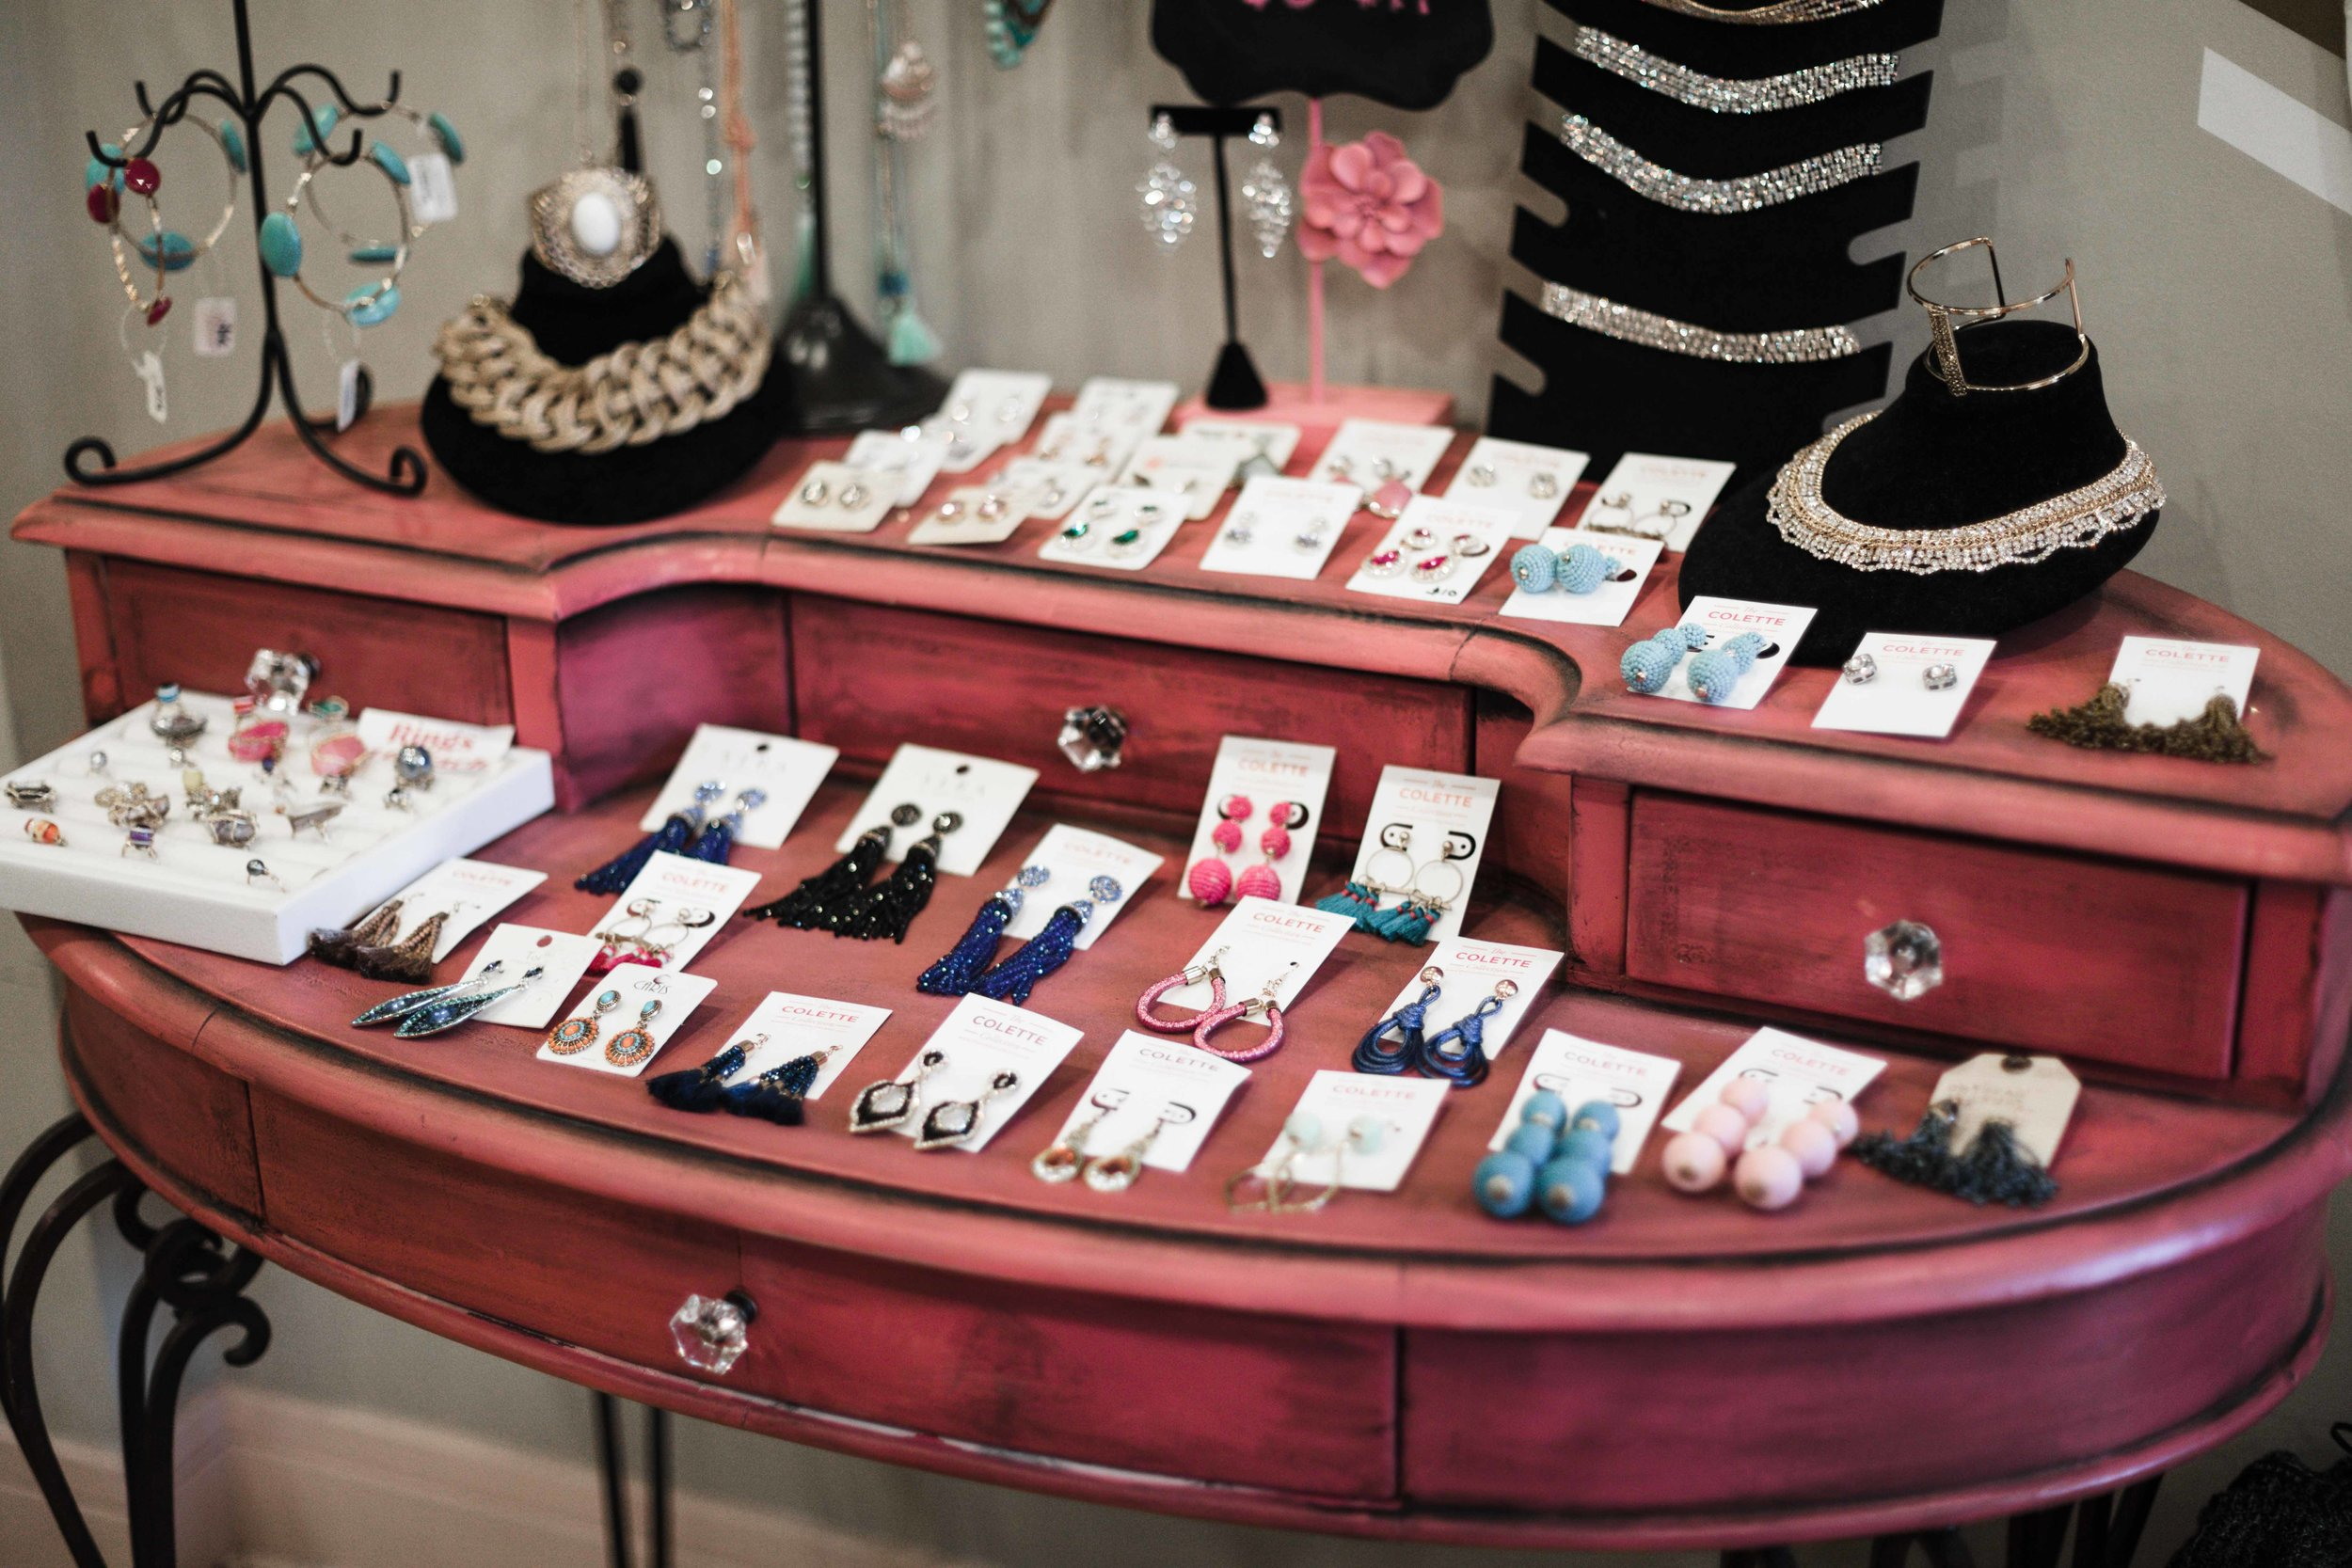 Old fashioned jewelry display case at The Colette Collection in Chicago boutique